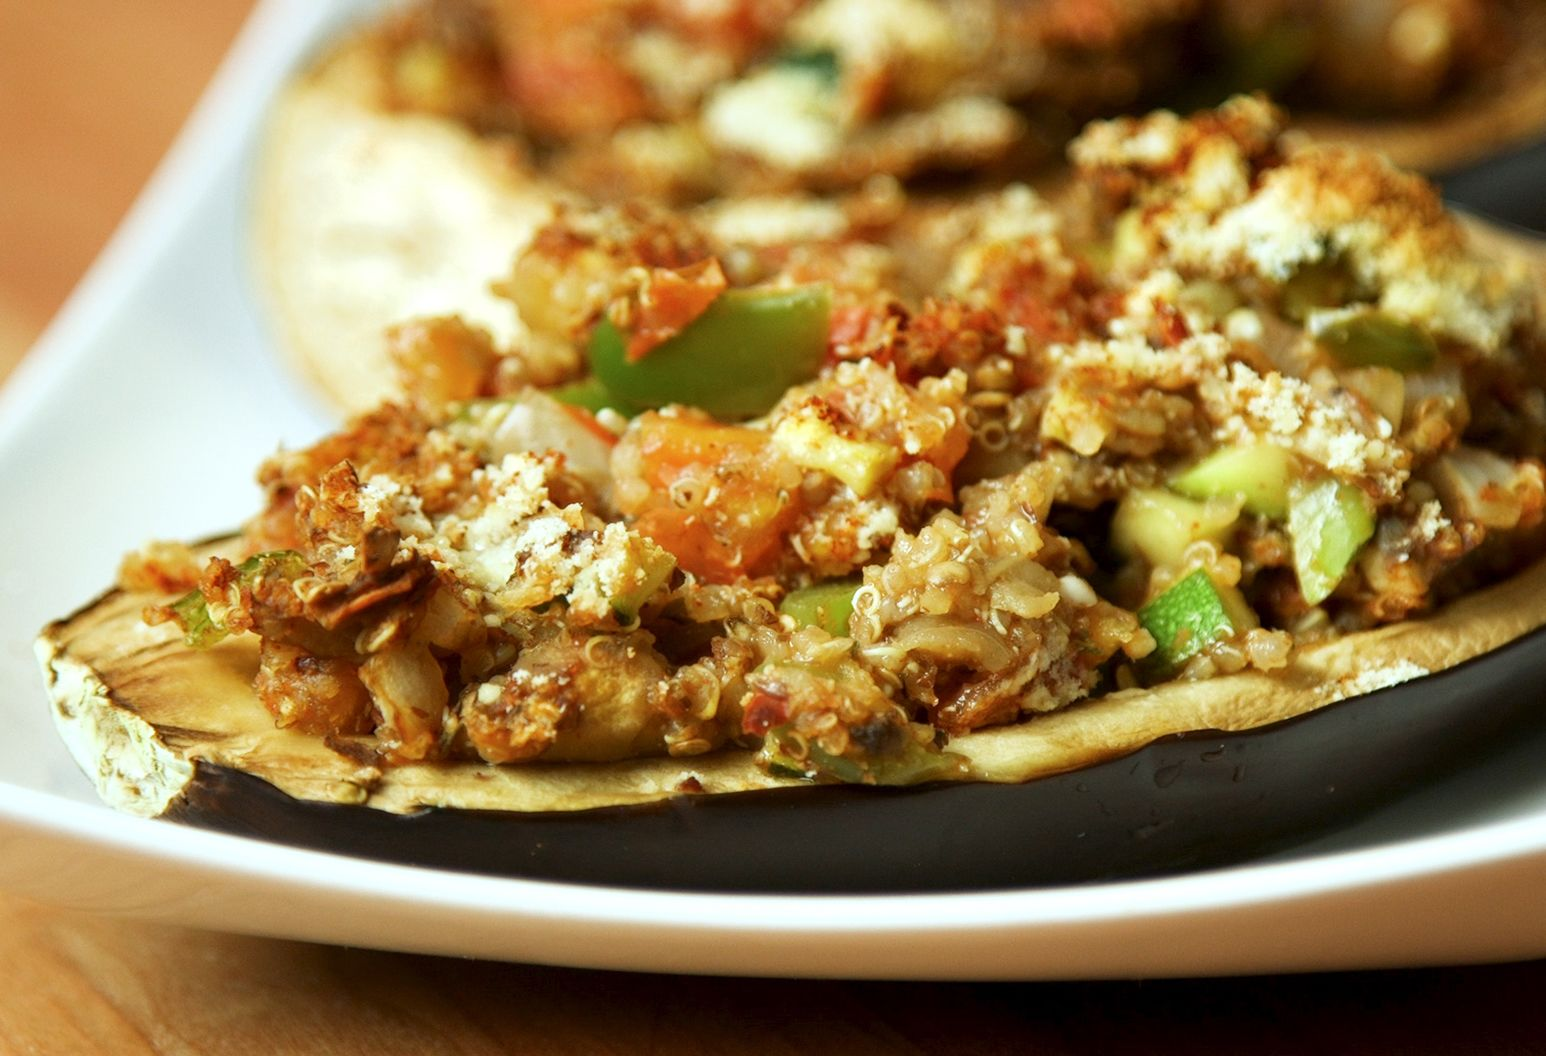 Get cooking with our vegetarian stuffed eggplant recipe!